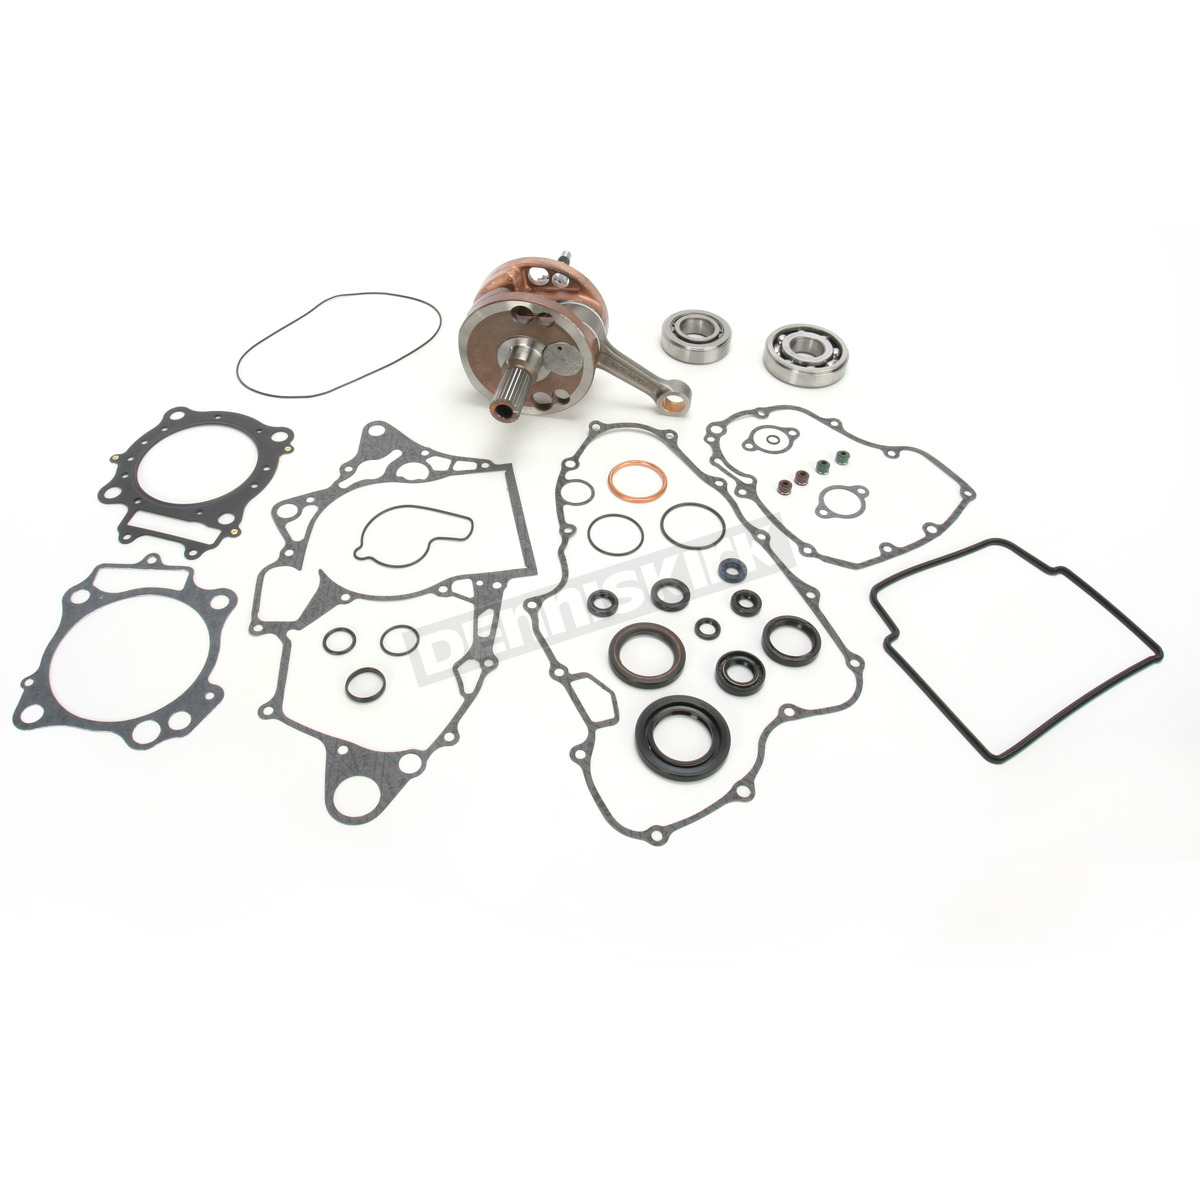 Hot Rods Heavy Duty Stroker Crankshaft Bottom End Kit